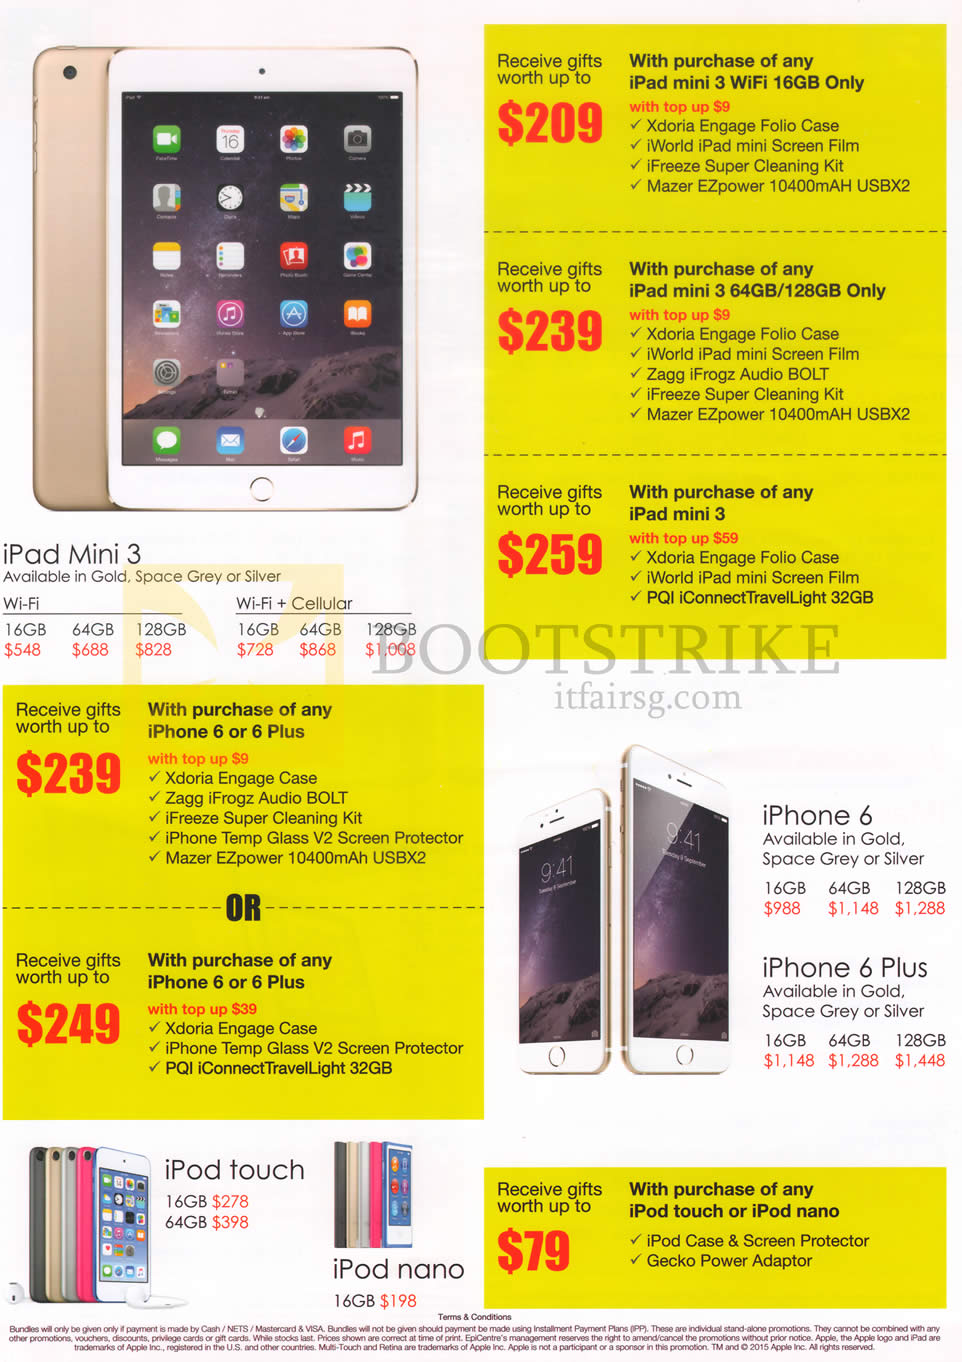 Epicentre Apple Ipad Mini 3 Iphone 6 Plus Ipod Touch 64gb Gold Comex 2015 Price List Image Brochure Of